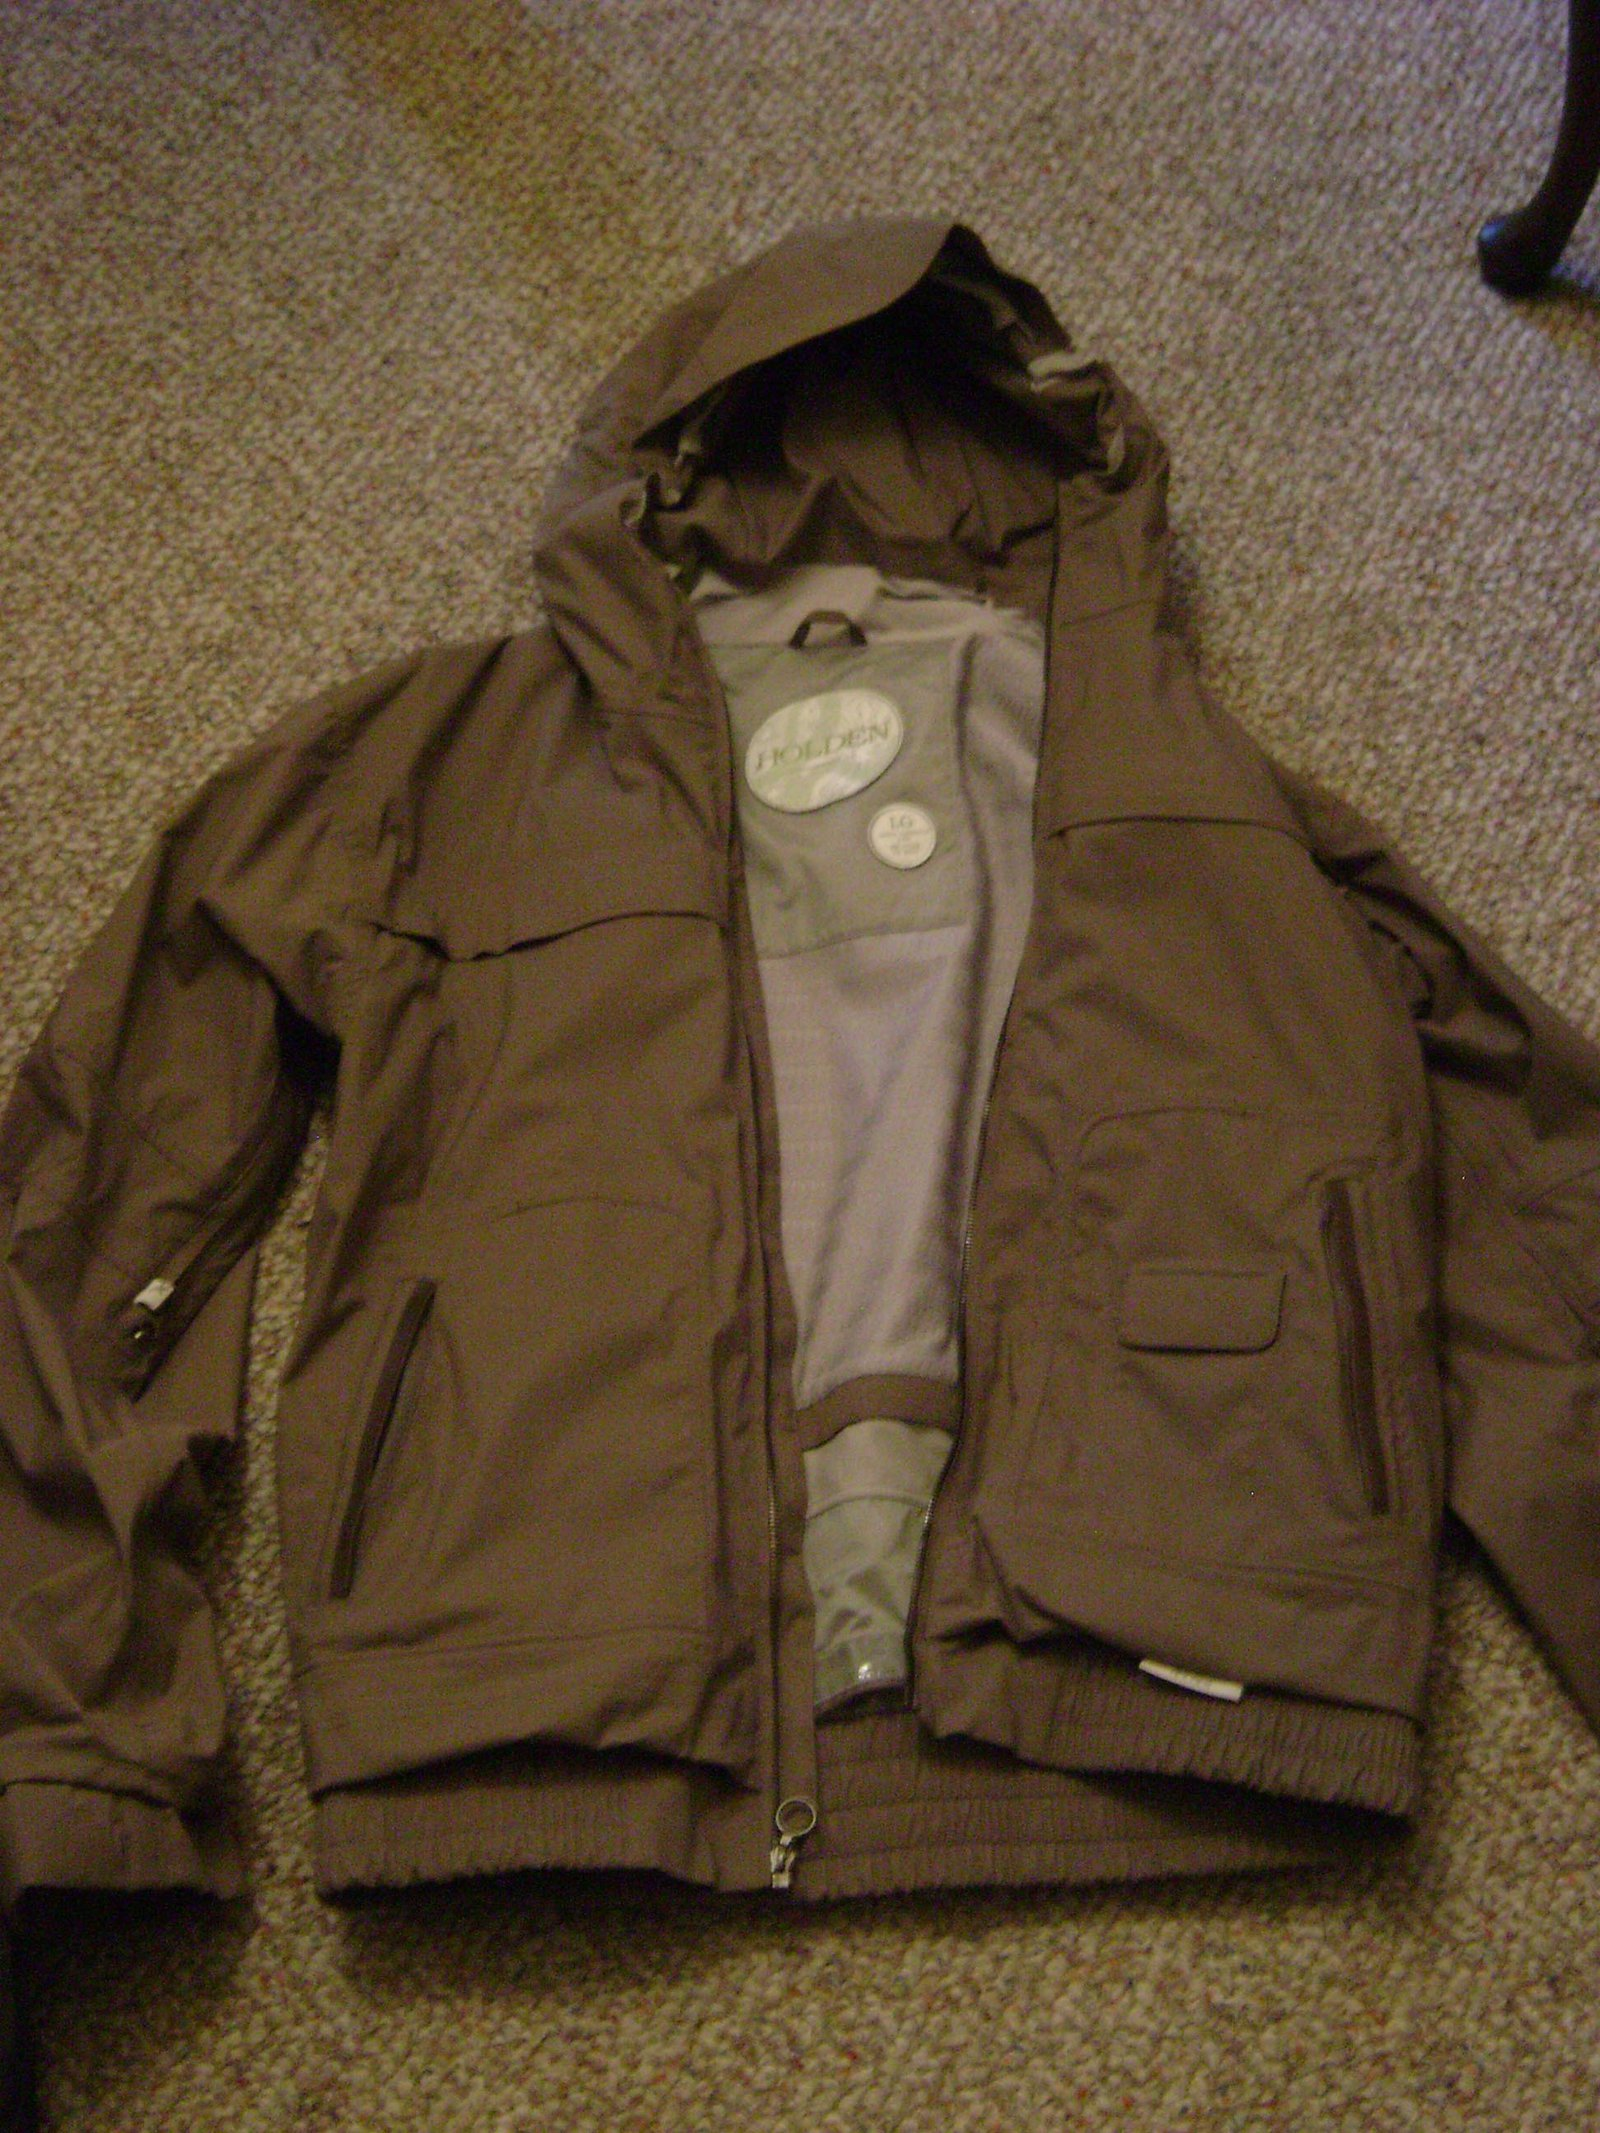 Holden jacket